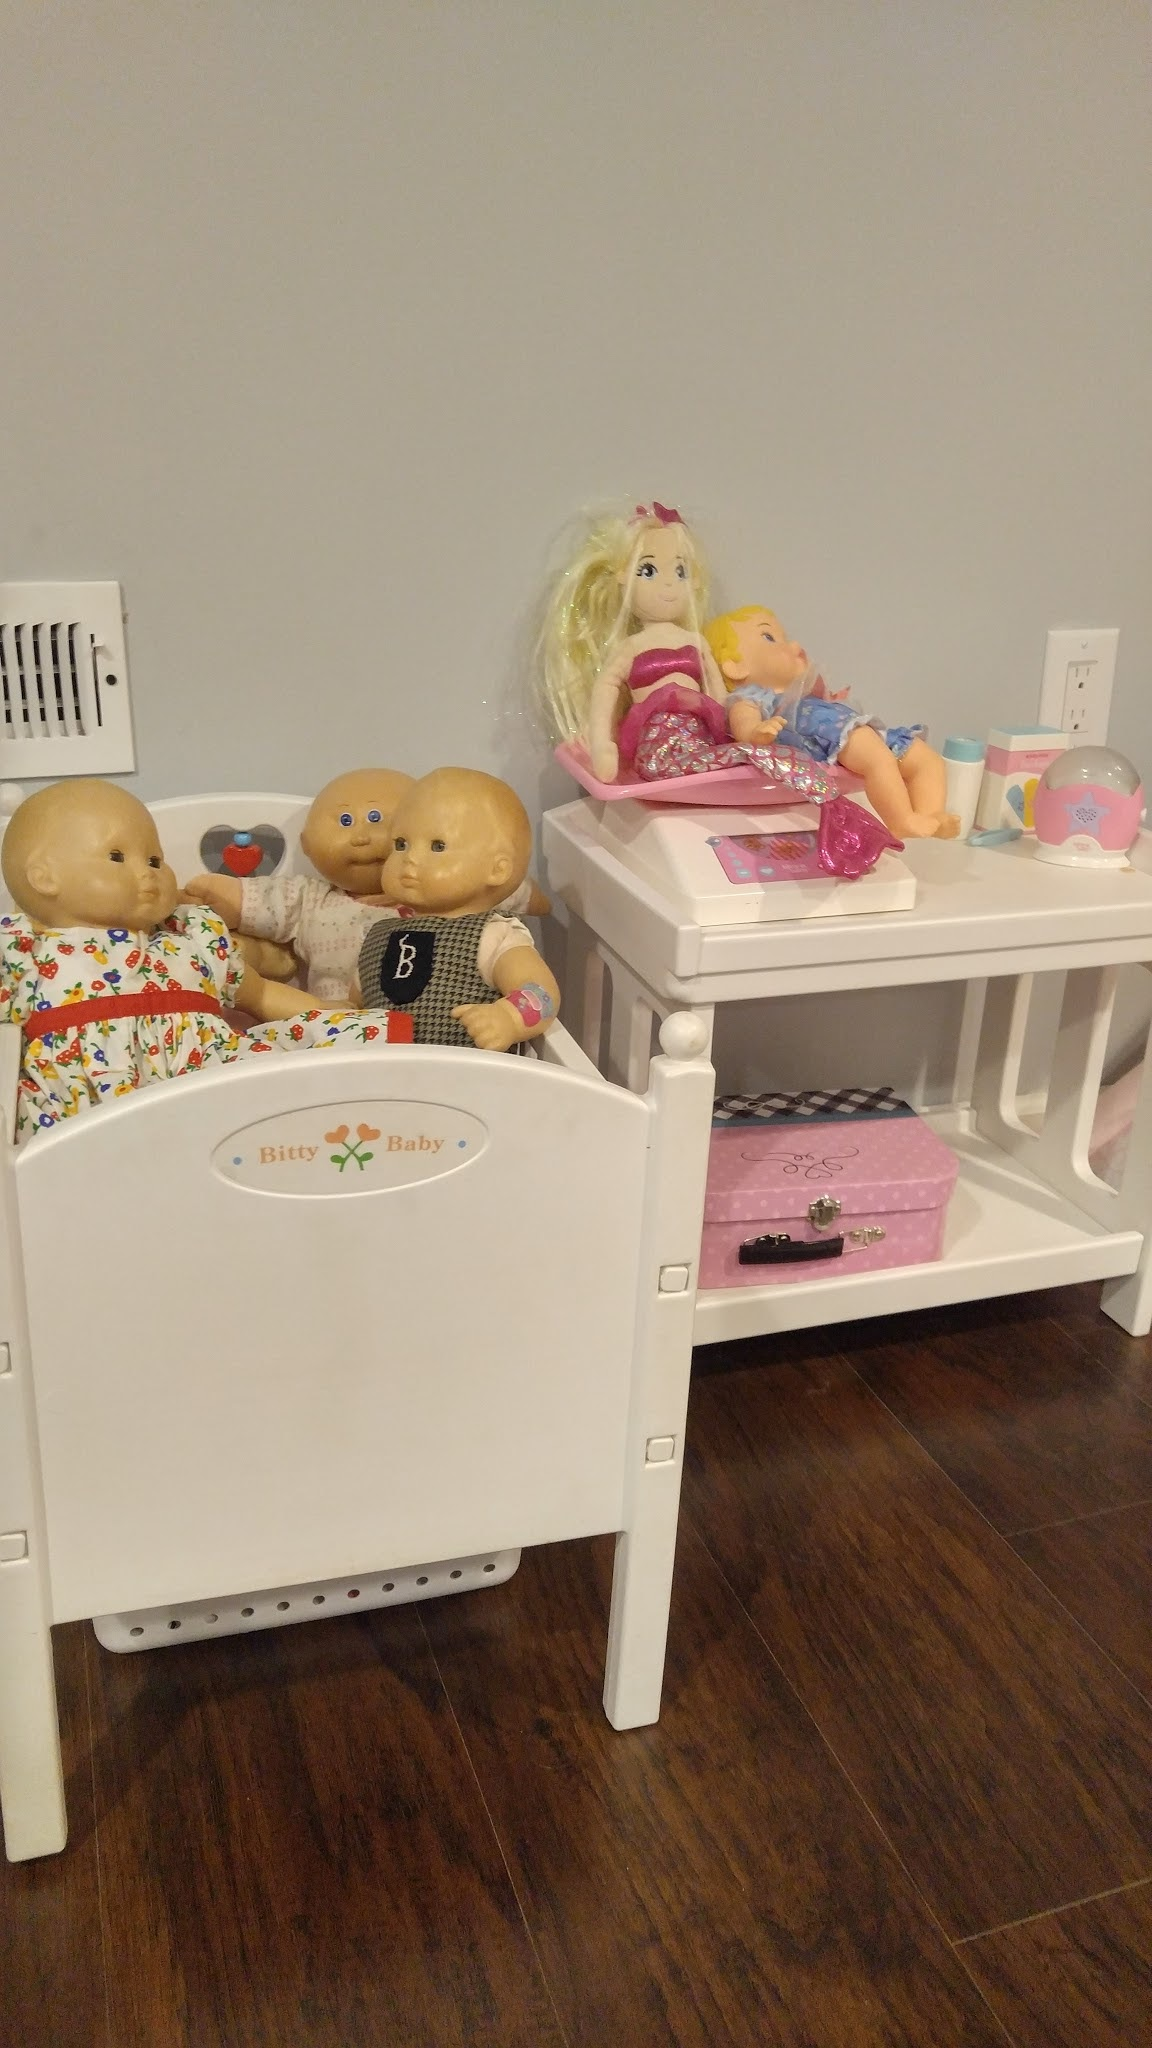 The Bitty Baby Crib And Changing Table Are Retired American Girl But They  Do Have Newer Versions Available. The Baby Doctor, Baby Monitor And Pink  Case Are ...